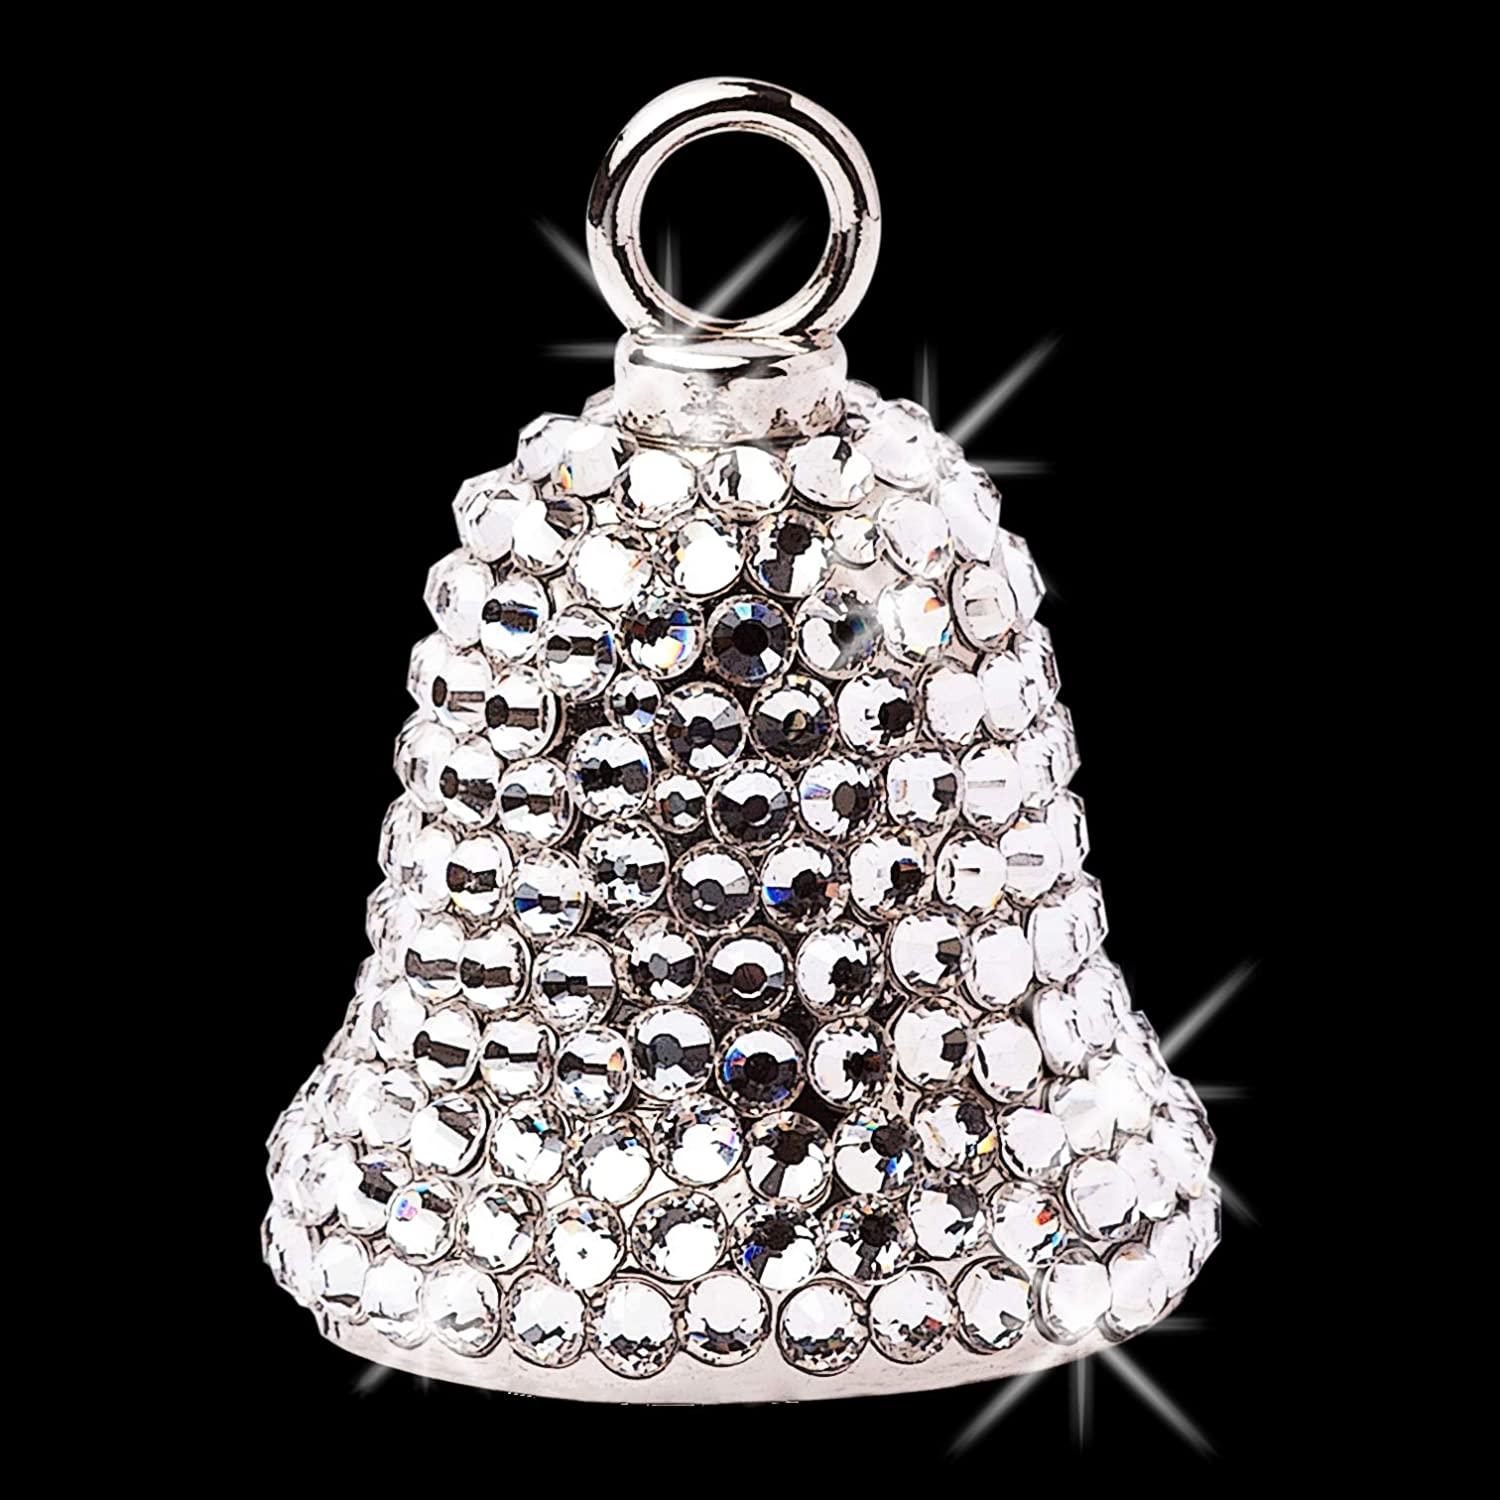 Sparkle Rider Motorcycle Ride Bell for Women - Handcrafted Biker Bells with  Swarovski Crystals - Guardian Angel Bling Accessory for Gremlin Protection  ... 5d993cdafb